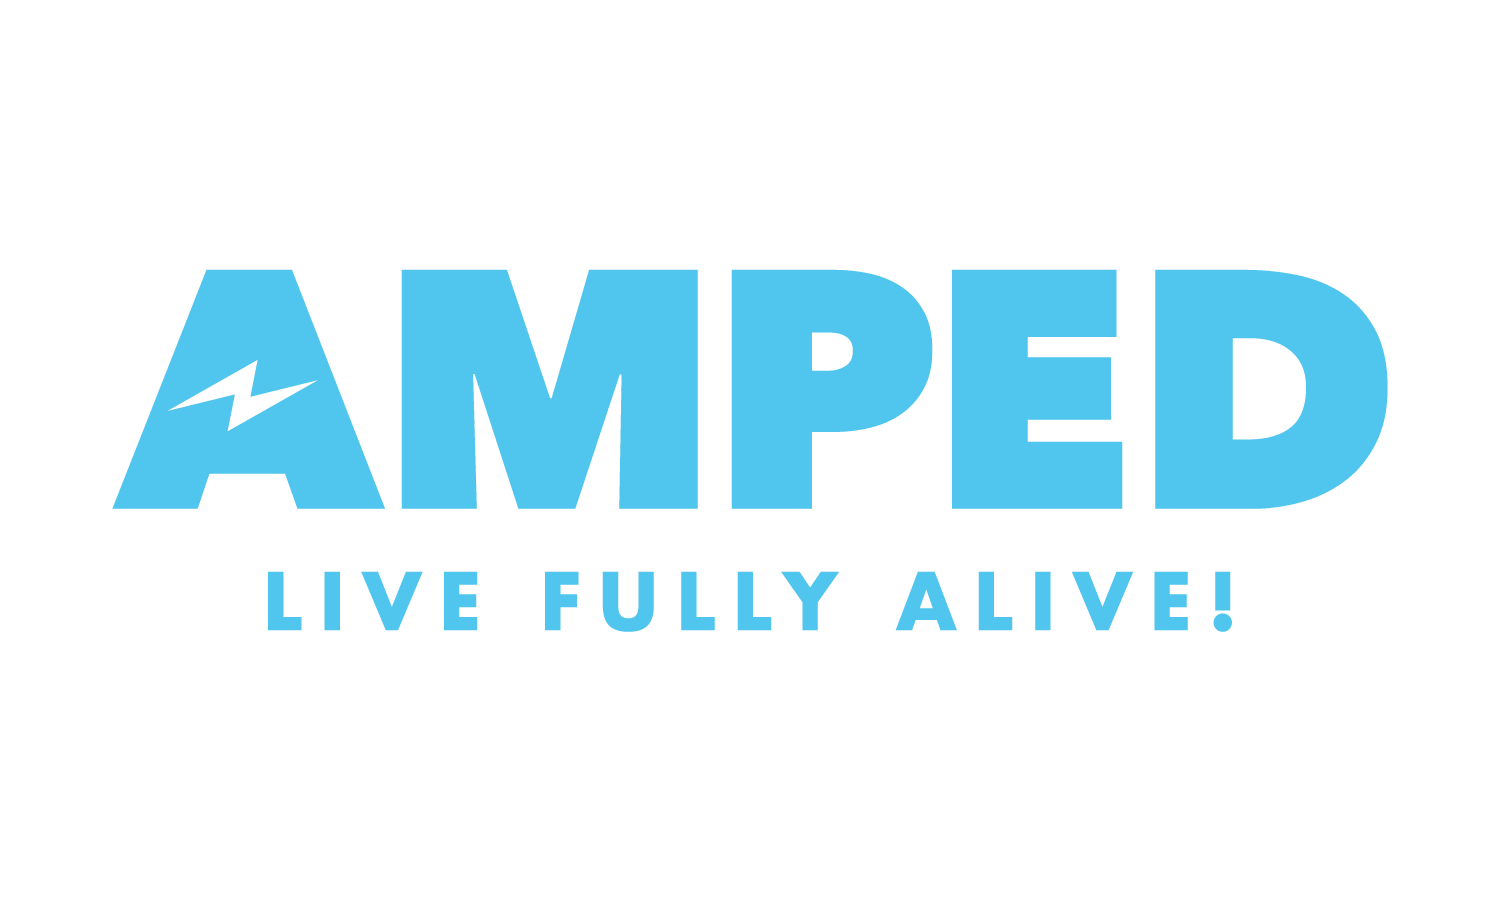 AMPED_FULL_LOGO_Blue_CMYK.png